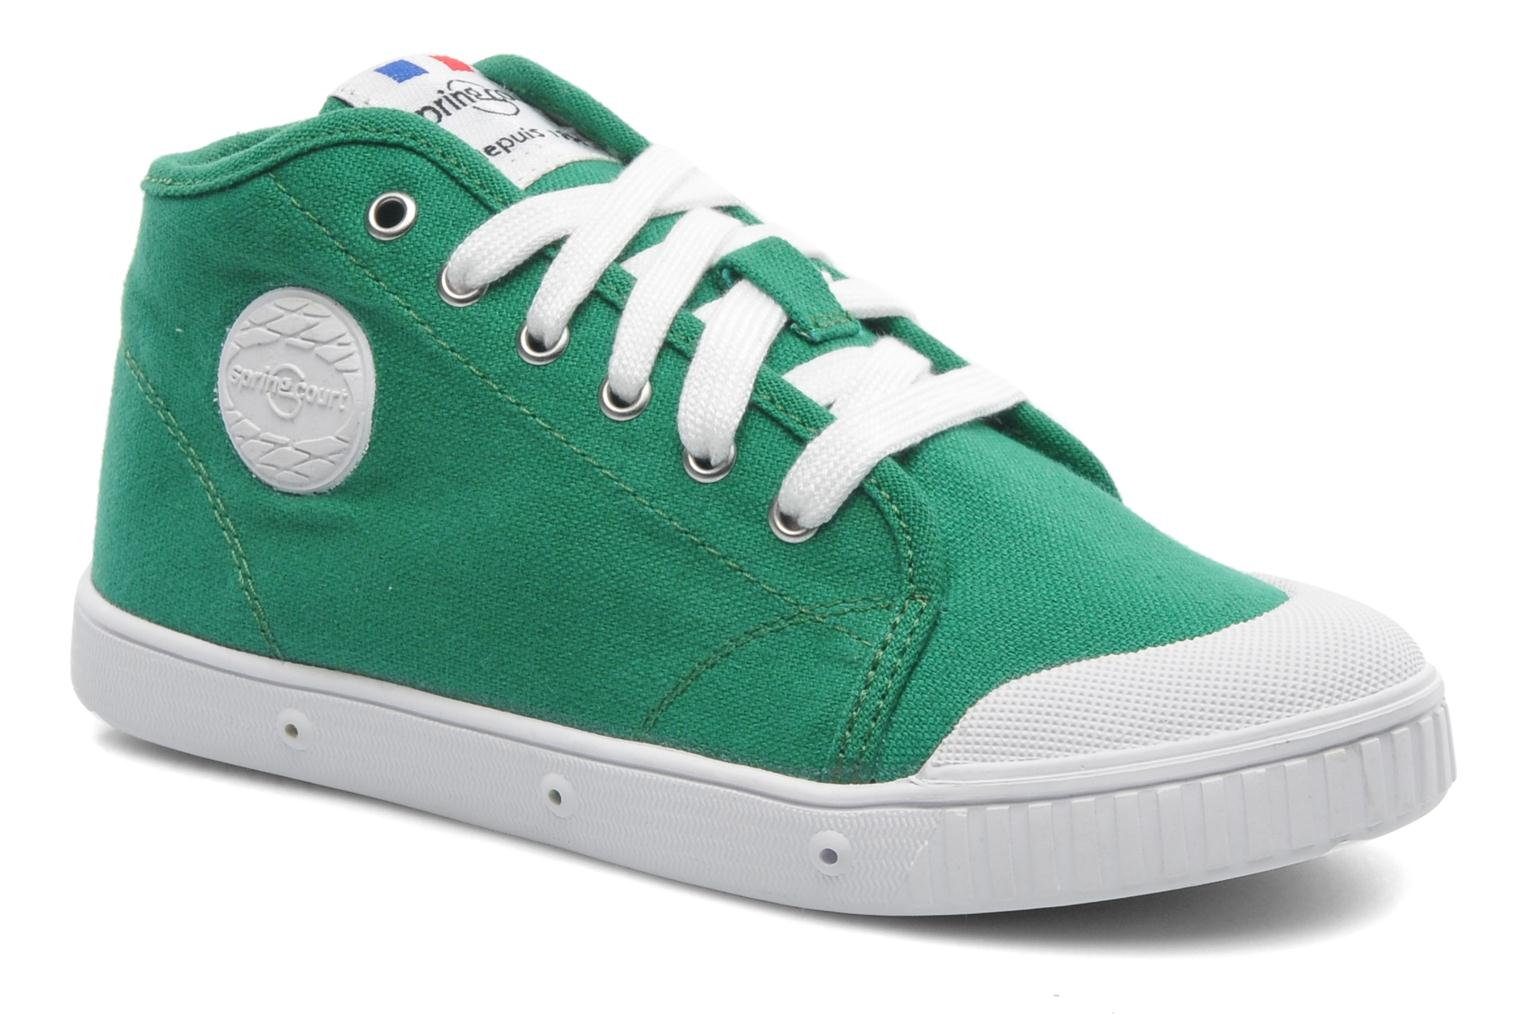 Sneakers BE1 Classic K8 by Spring Court